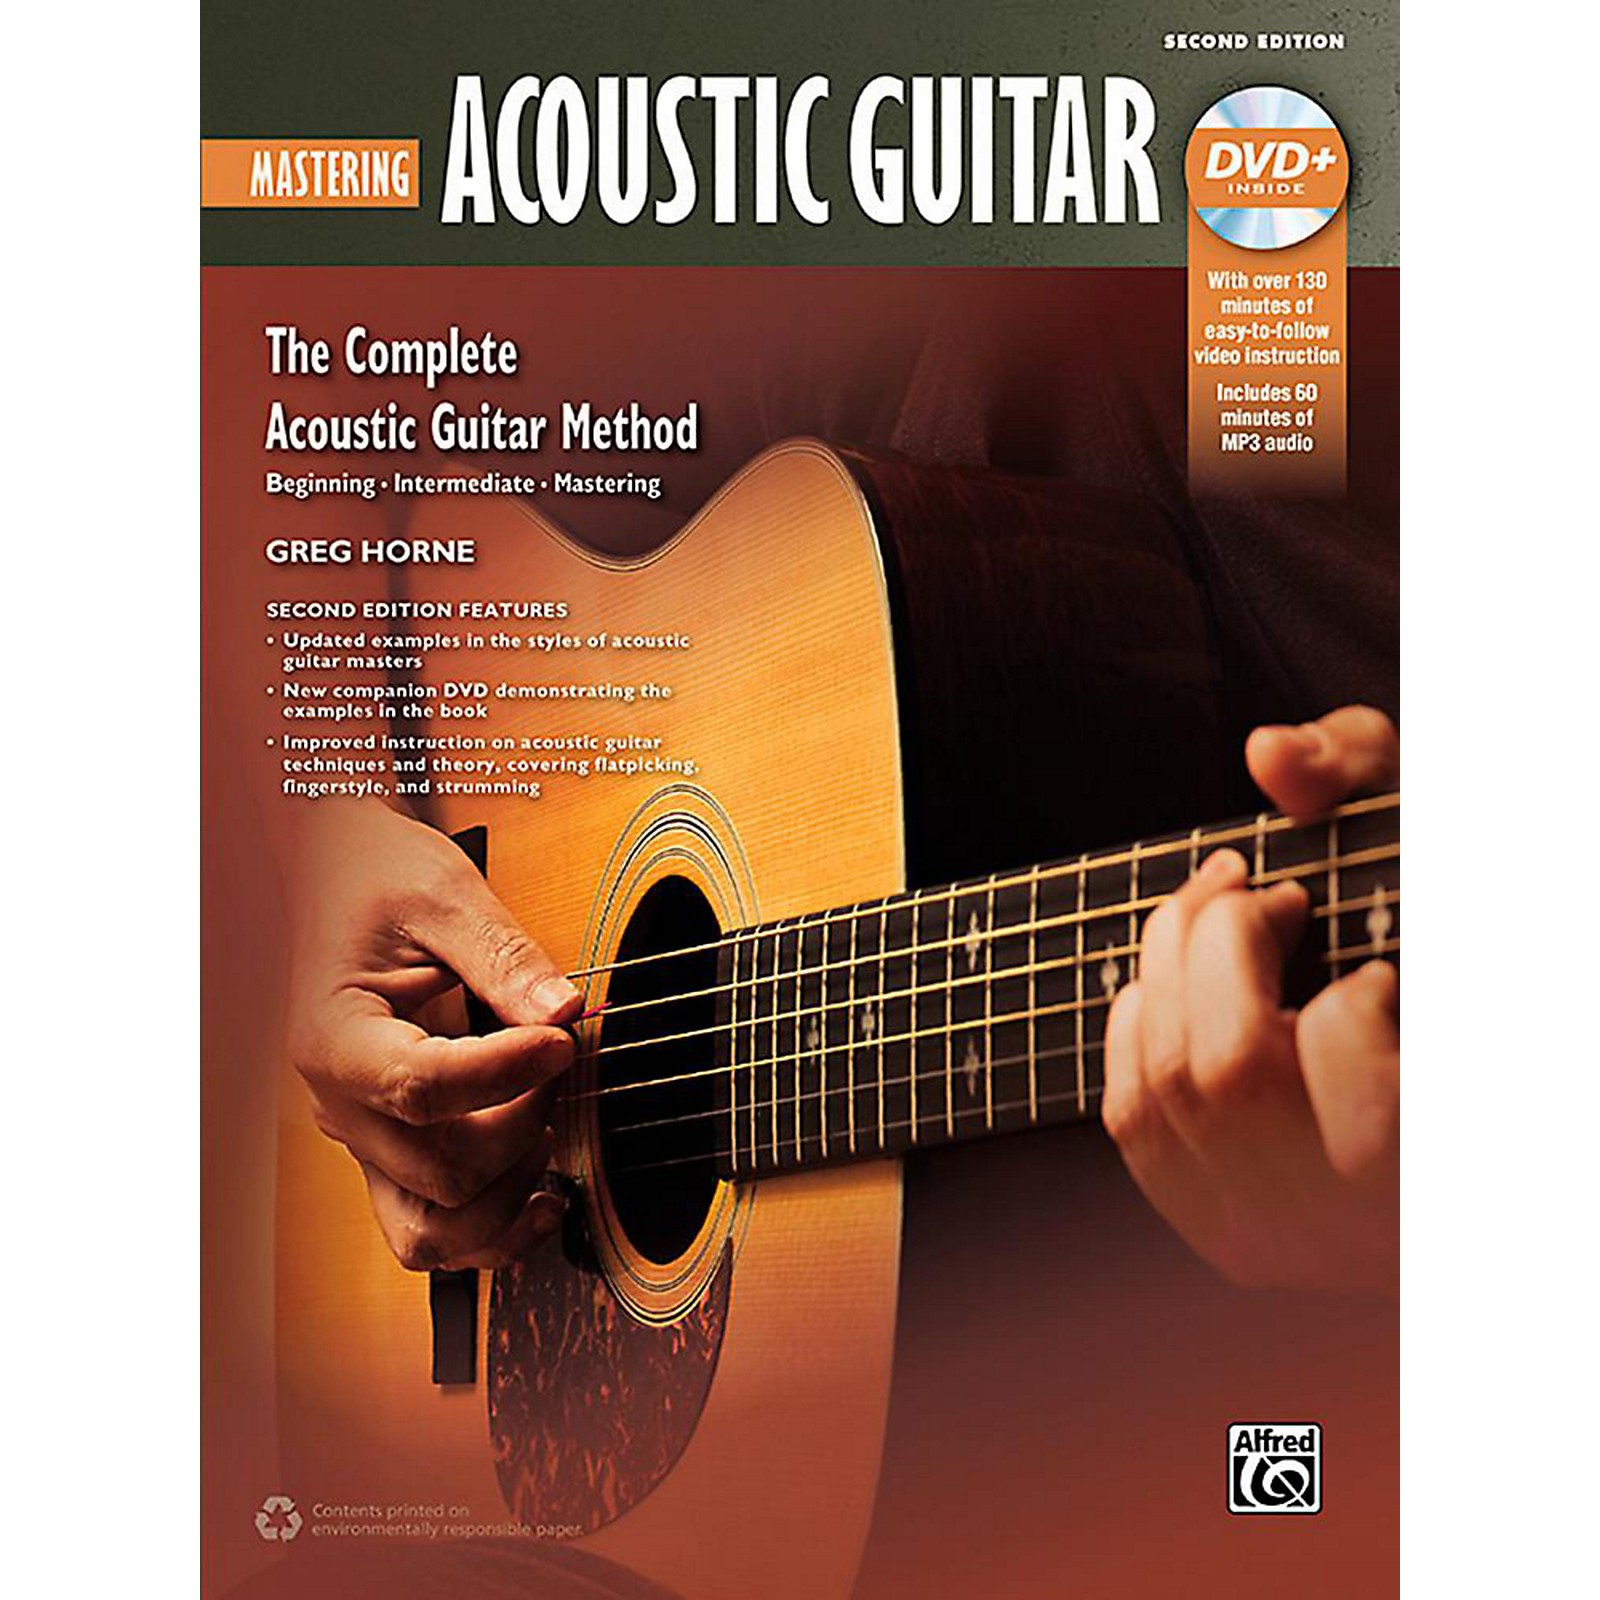 Alfred The Complete Acoustic Guitar Method: Mastering Acoustic Guitar (2nd Edition) - Book & DVD